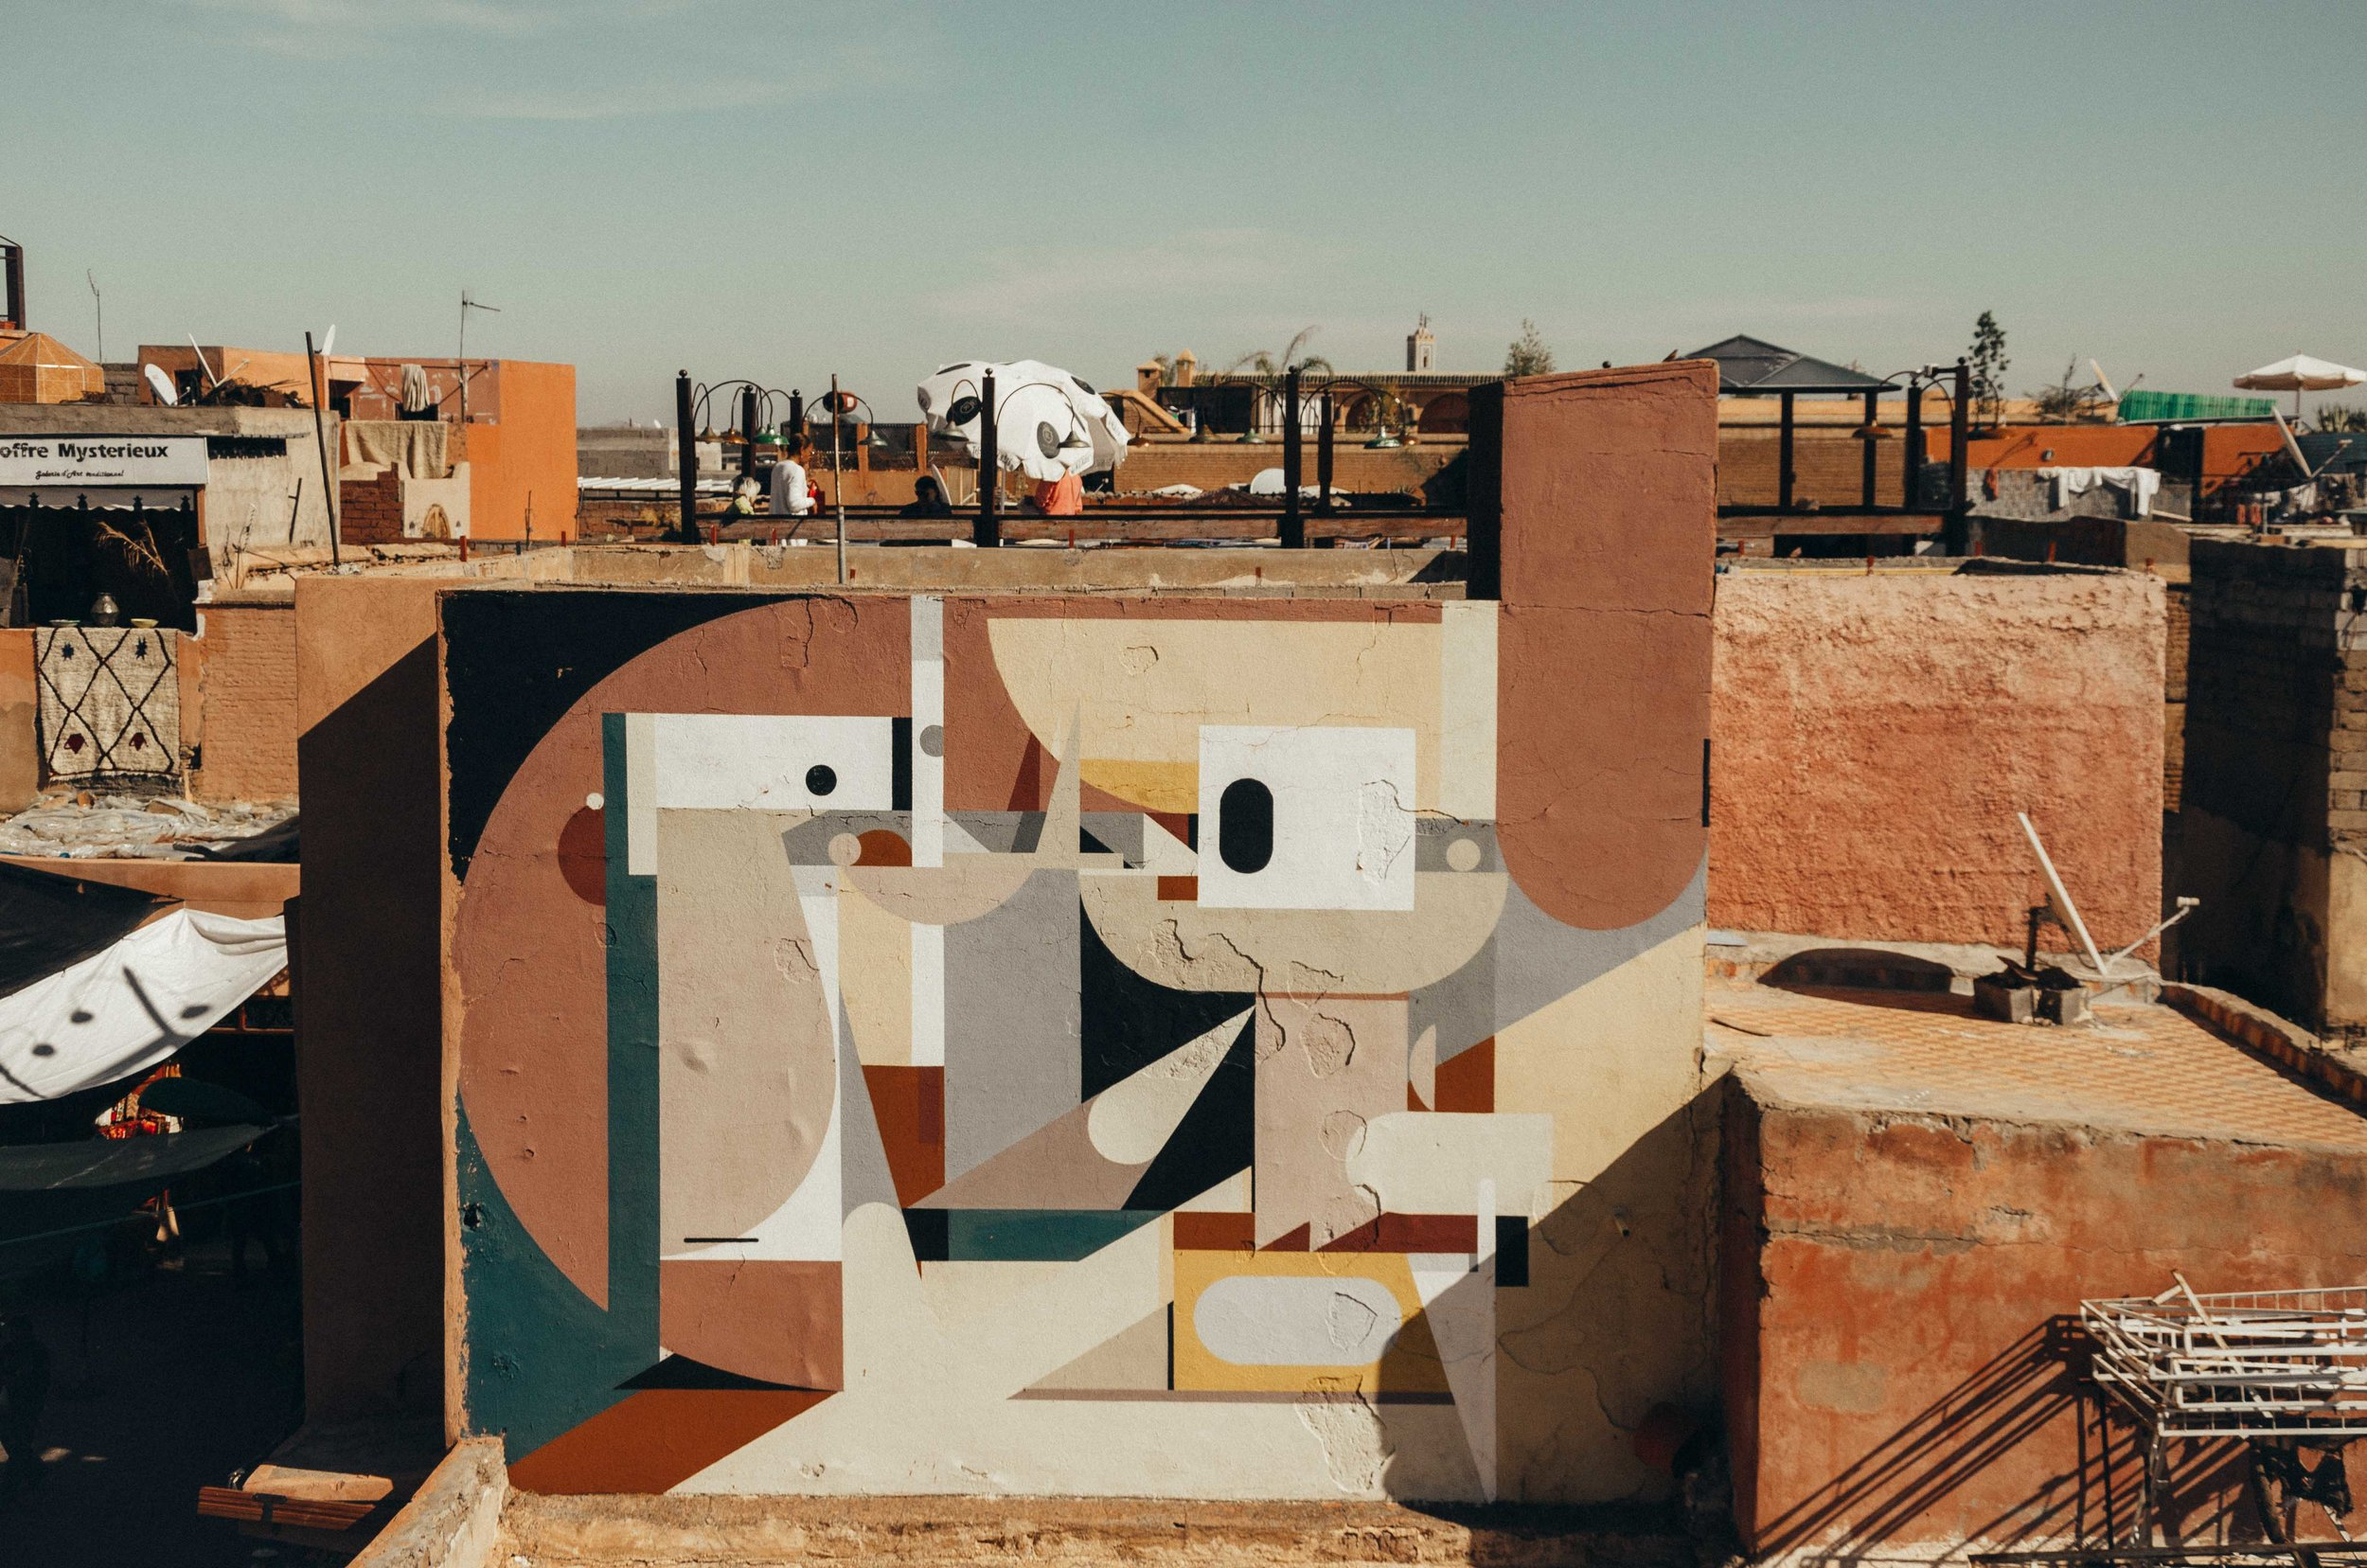 An unexpected piece of street art atop a rugged building in Marrakech. I like how the colours of the mural blend seamlessly with the environment!